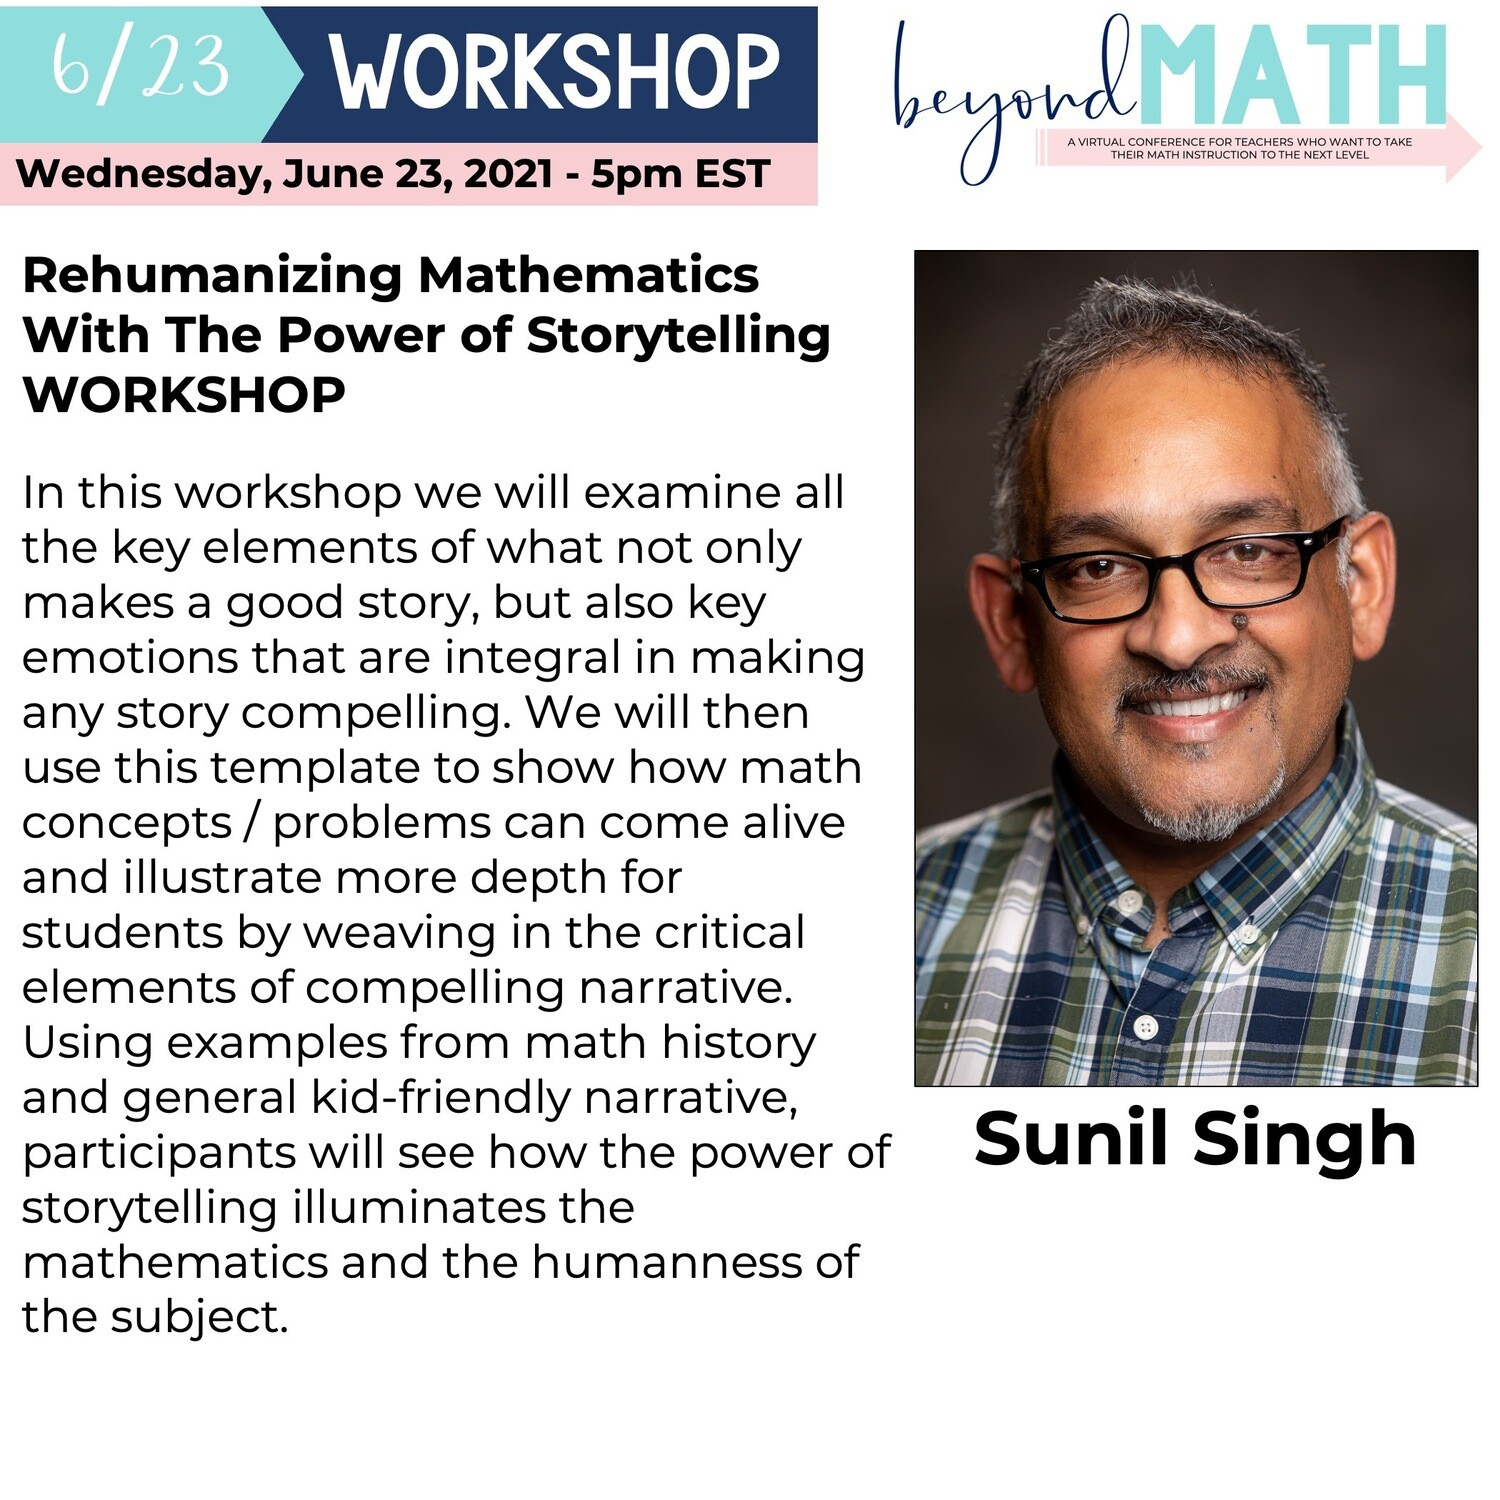 Rehumanizing Mathematics With The Power of Storytelling WORKSHOP with Sunil Singh